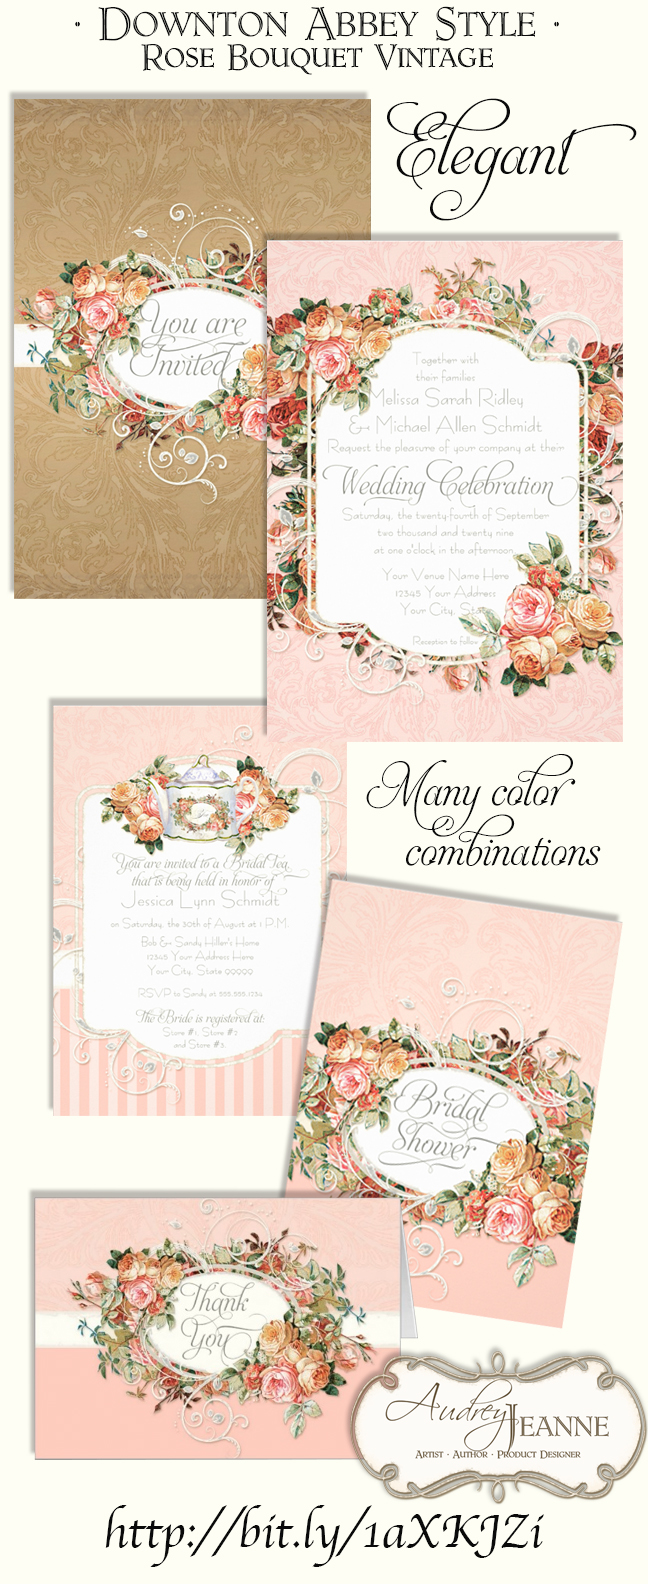 Downton Abbey style, Vintage English Roses Wedding Invitation Set.